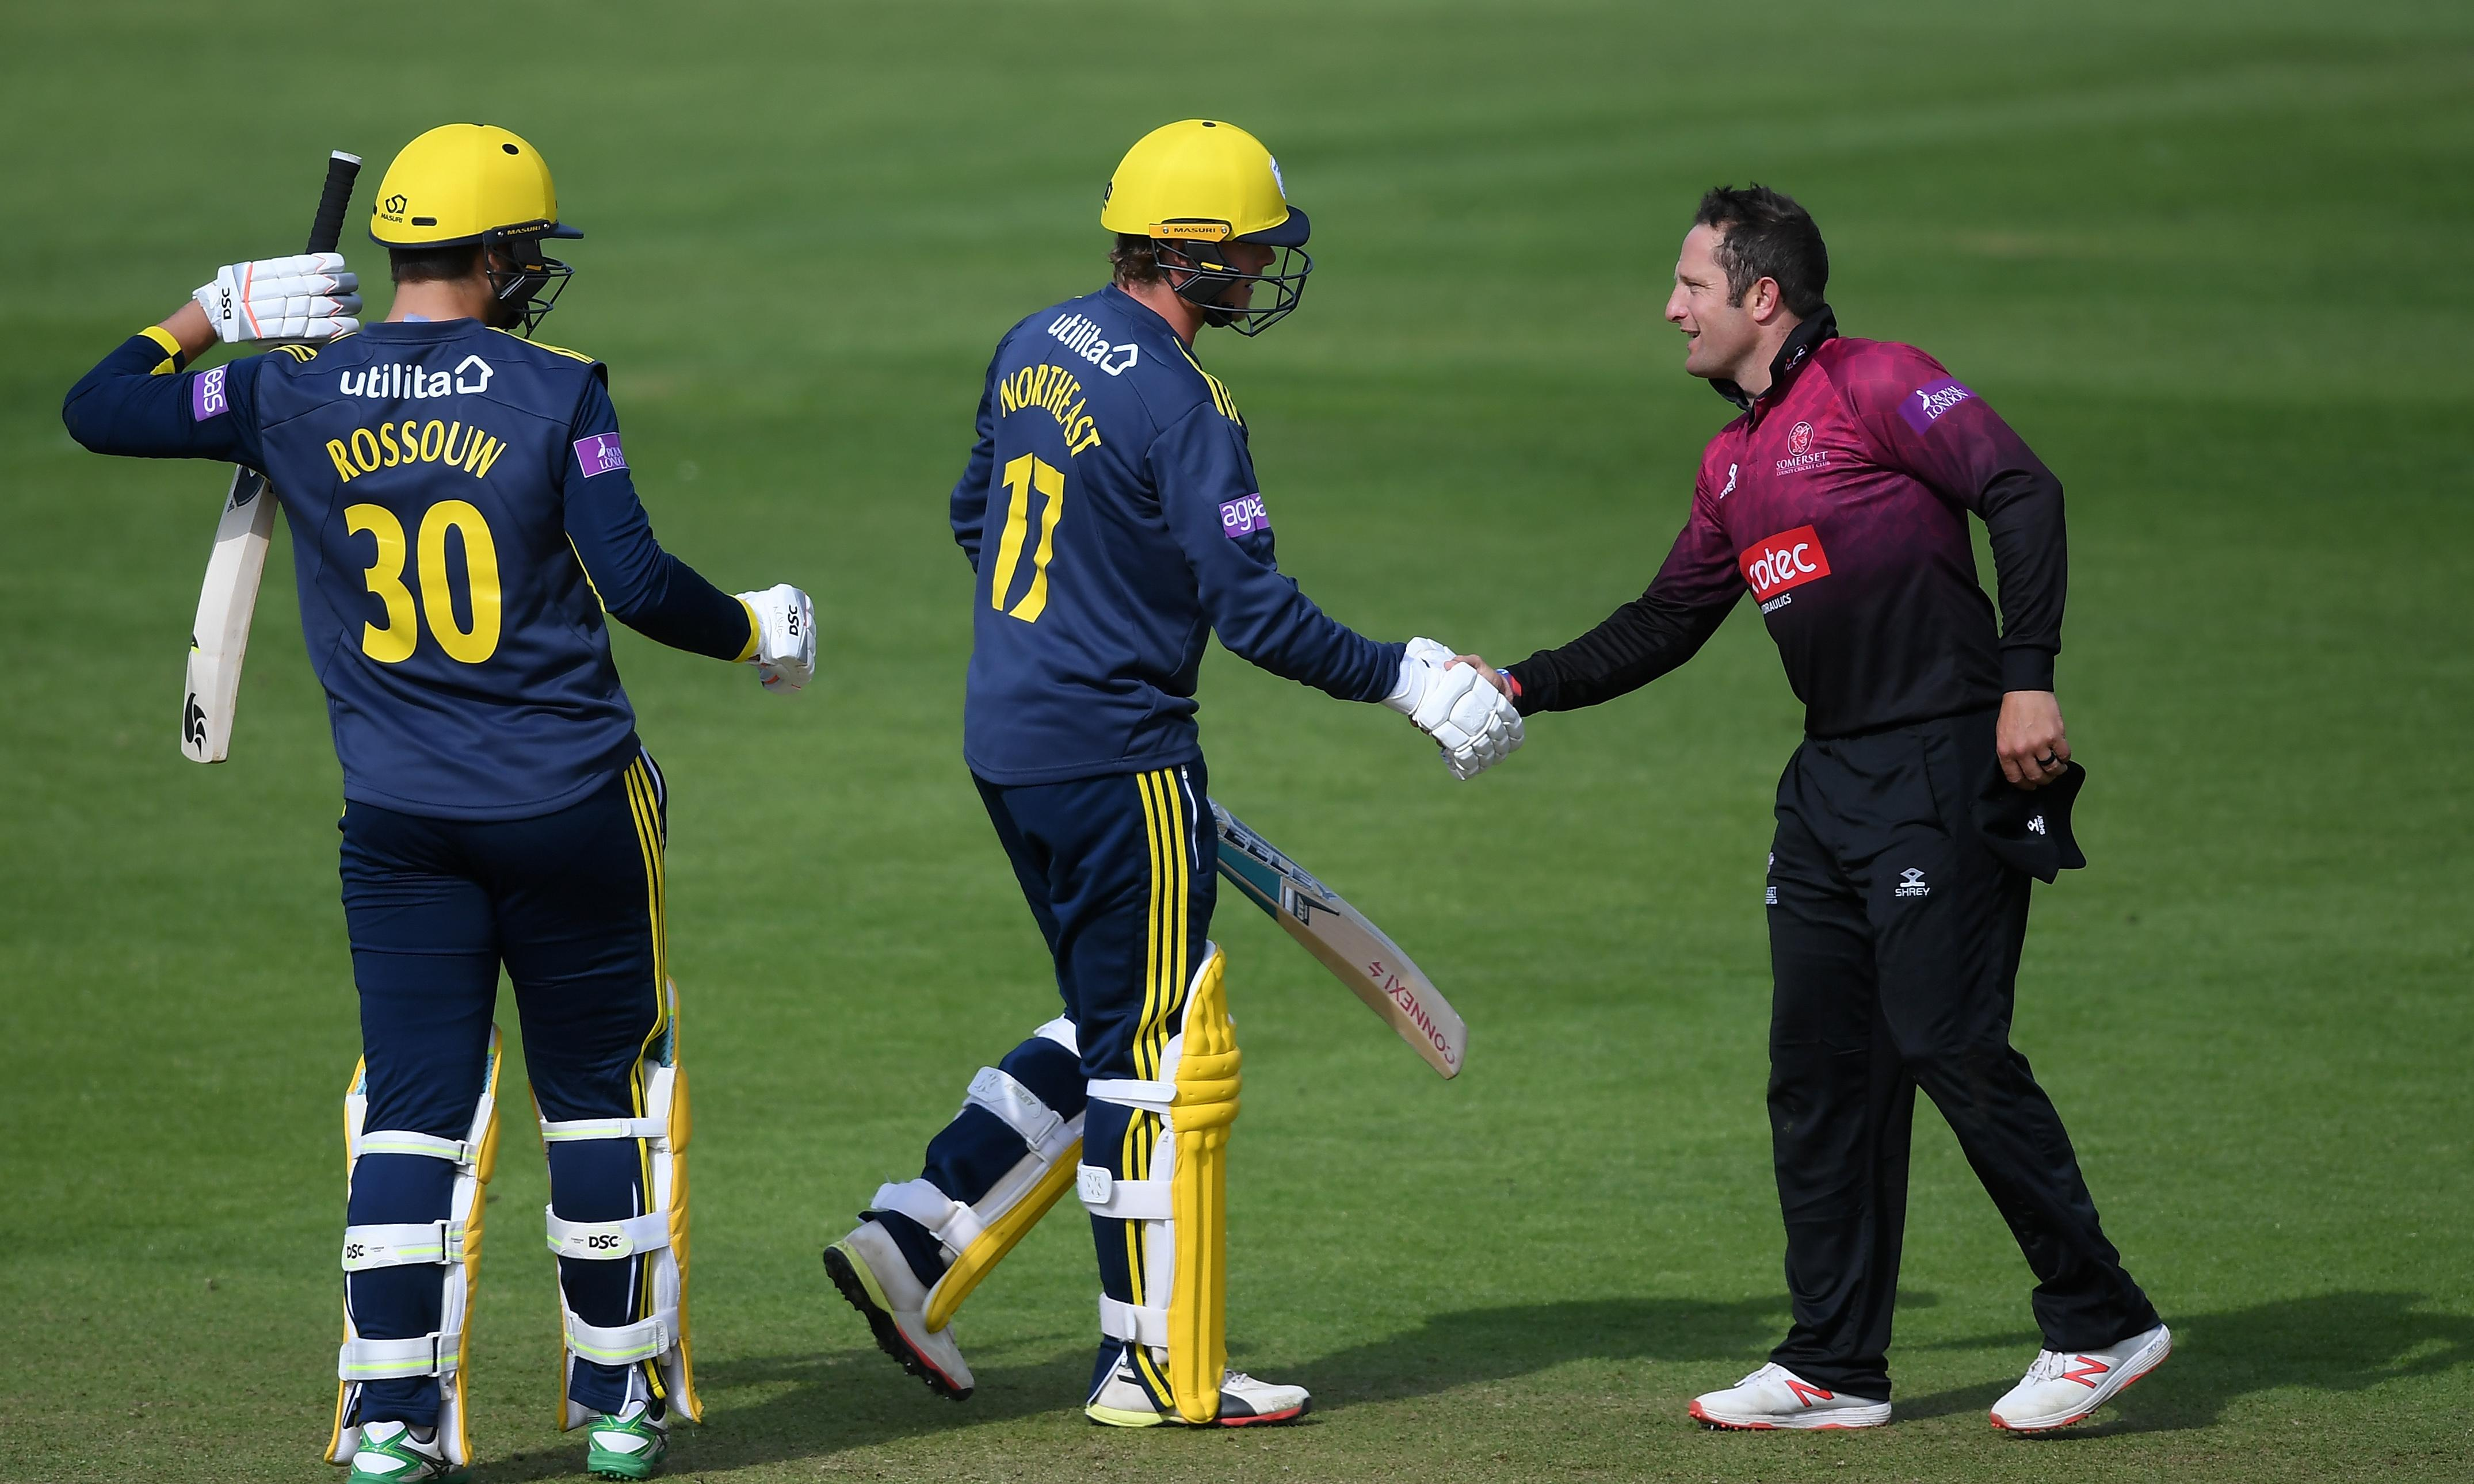 Hampshire and Somerset play their part in history with Lord's cup final